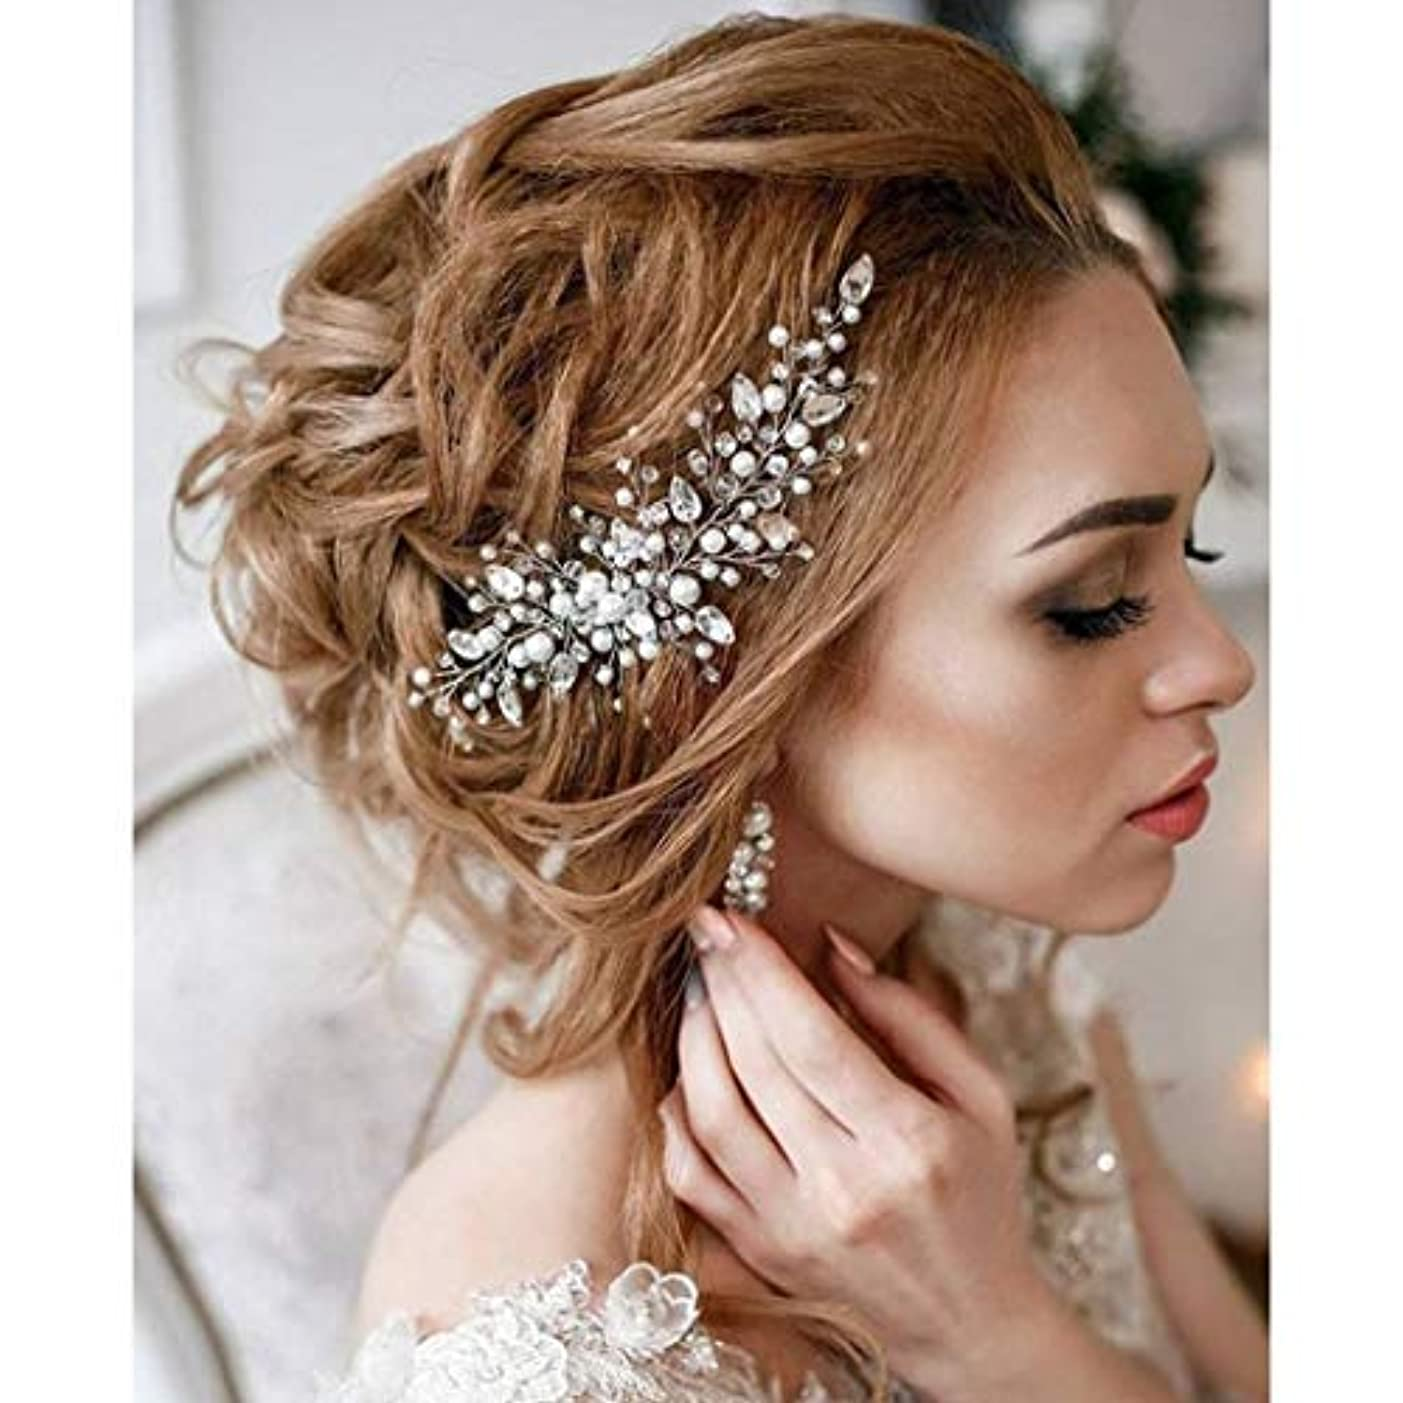 Aukmla Bride Wedding Hair Combs Bridal Hair Accessories Decorative for Brides and Bridesmaids [並行輸入品]